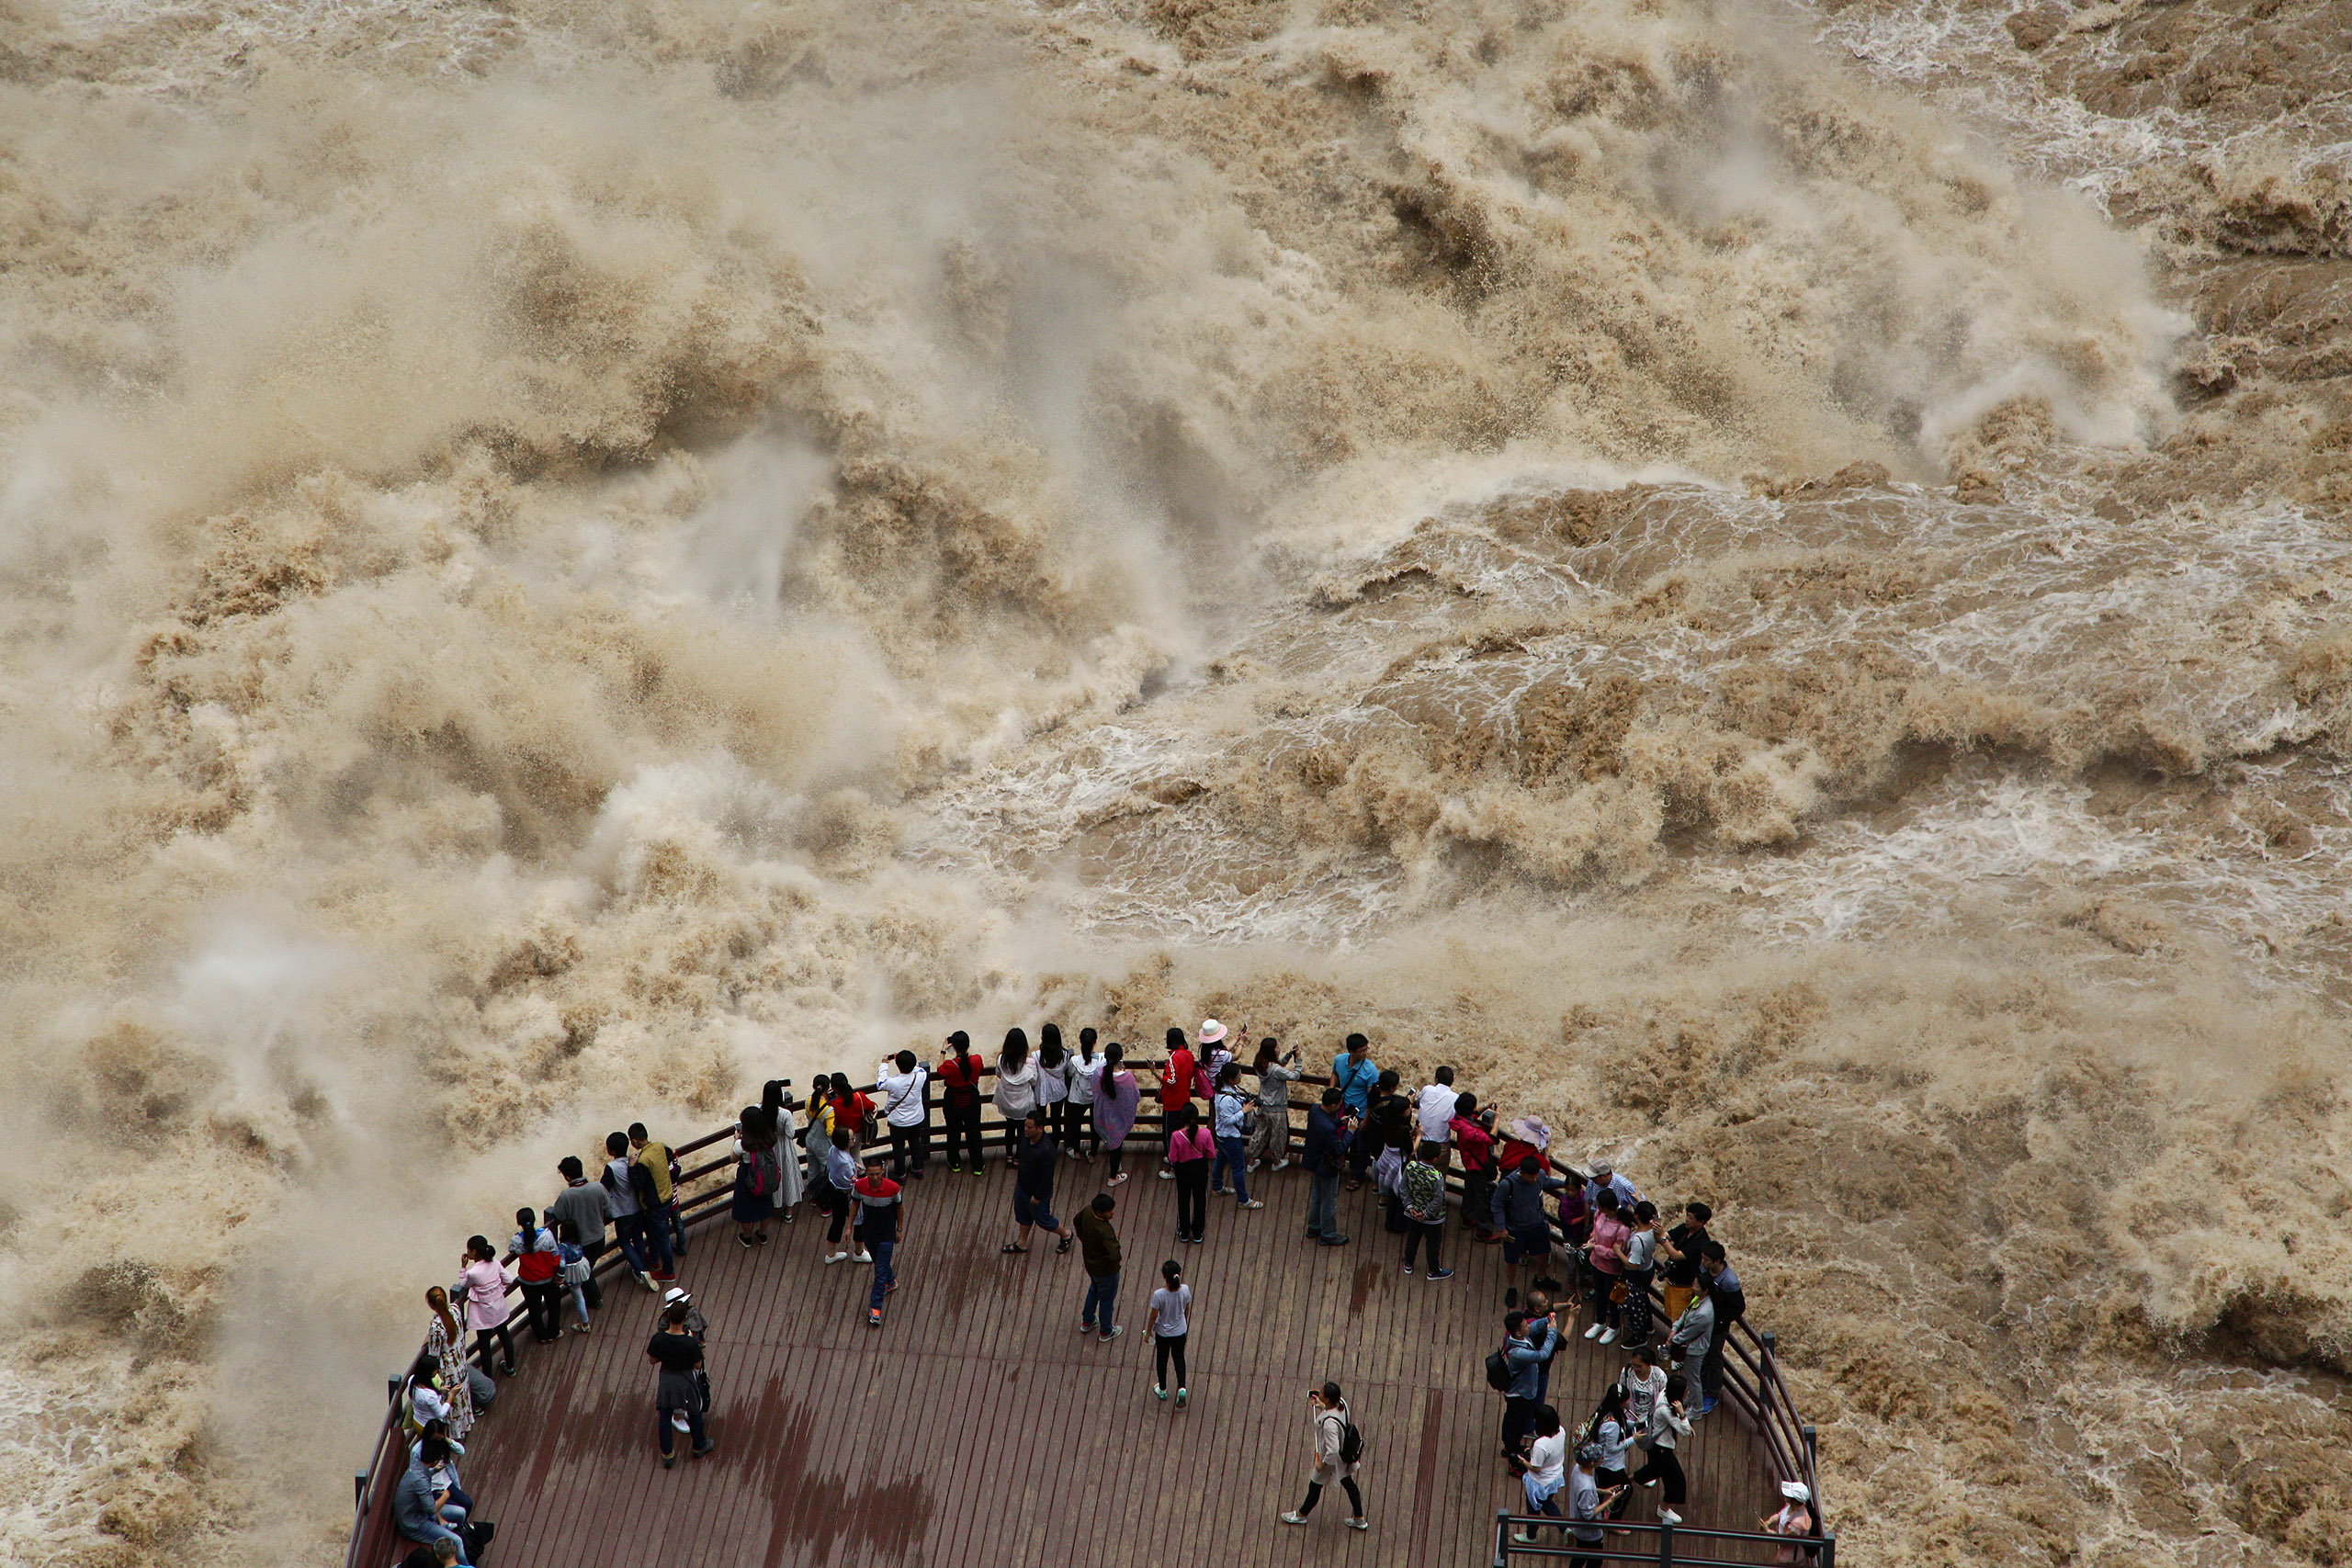 People watch the flooded Jinsha River at a sightseeing platform in Tiger Leaping Gorge, in Diqing, Yunnan Province, China, on July 15, 2016.